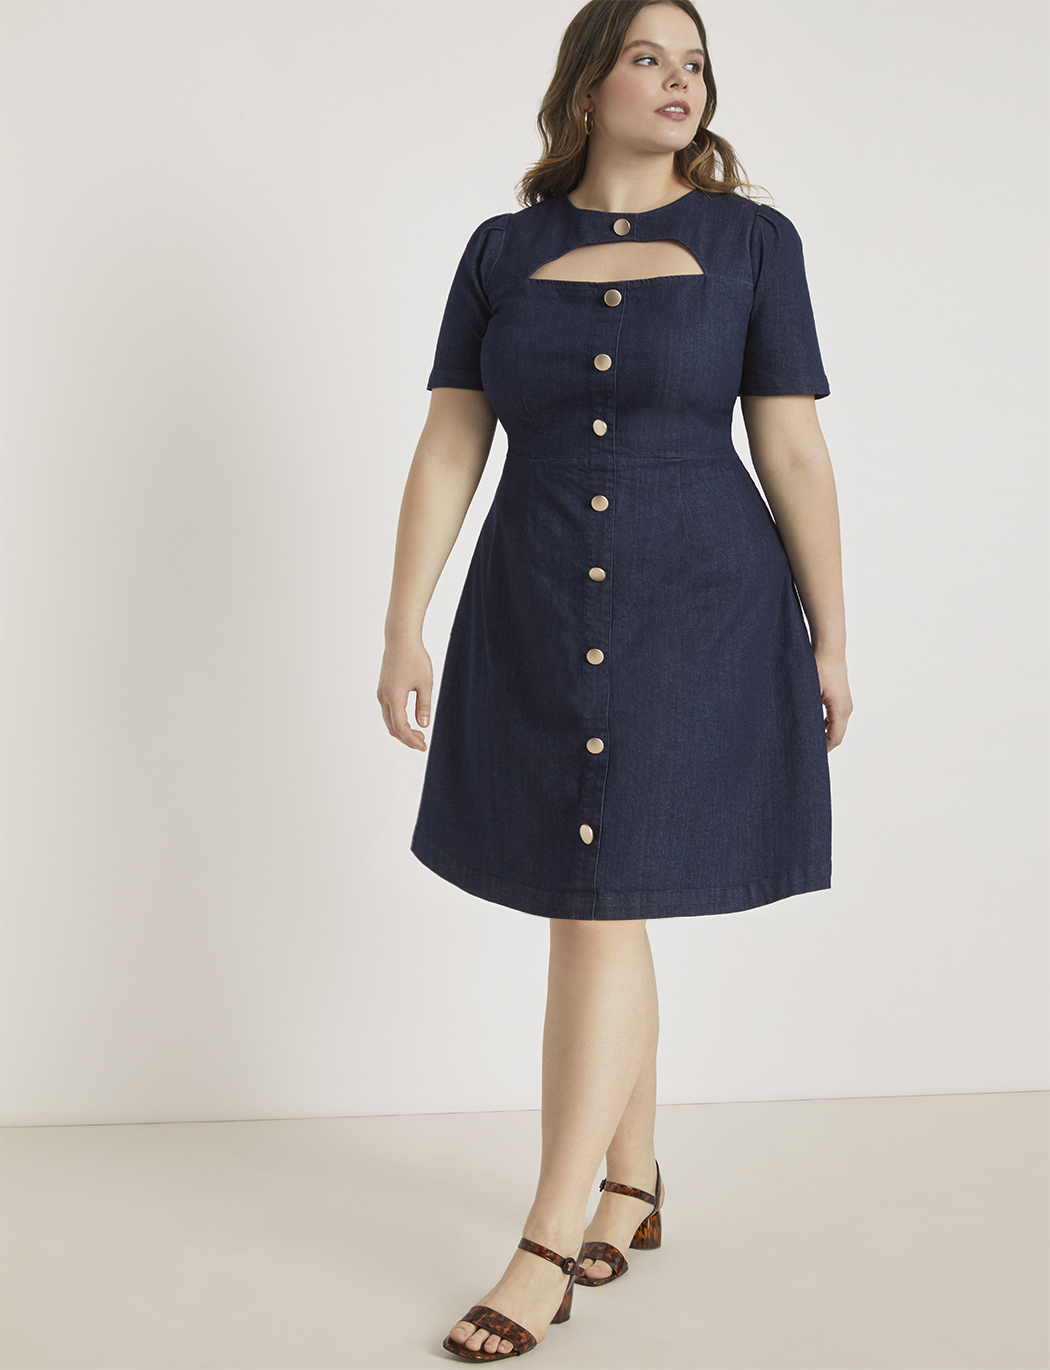 Cutout Button Front Denim Dress | Women\'s Plus Size Dresses | ELOQUII